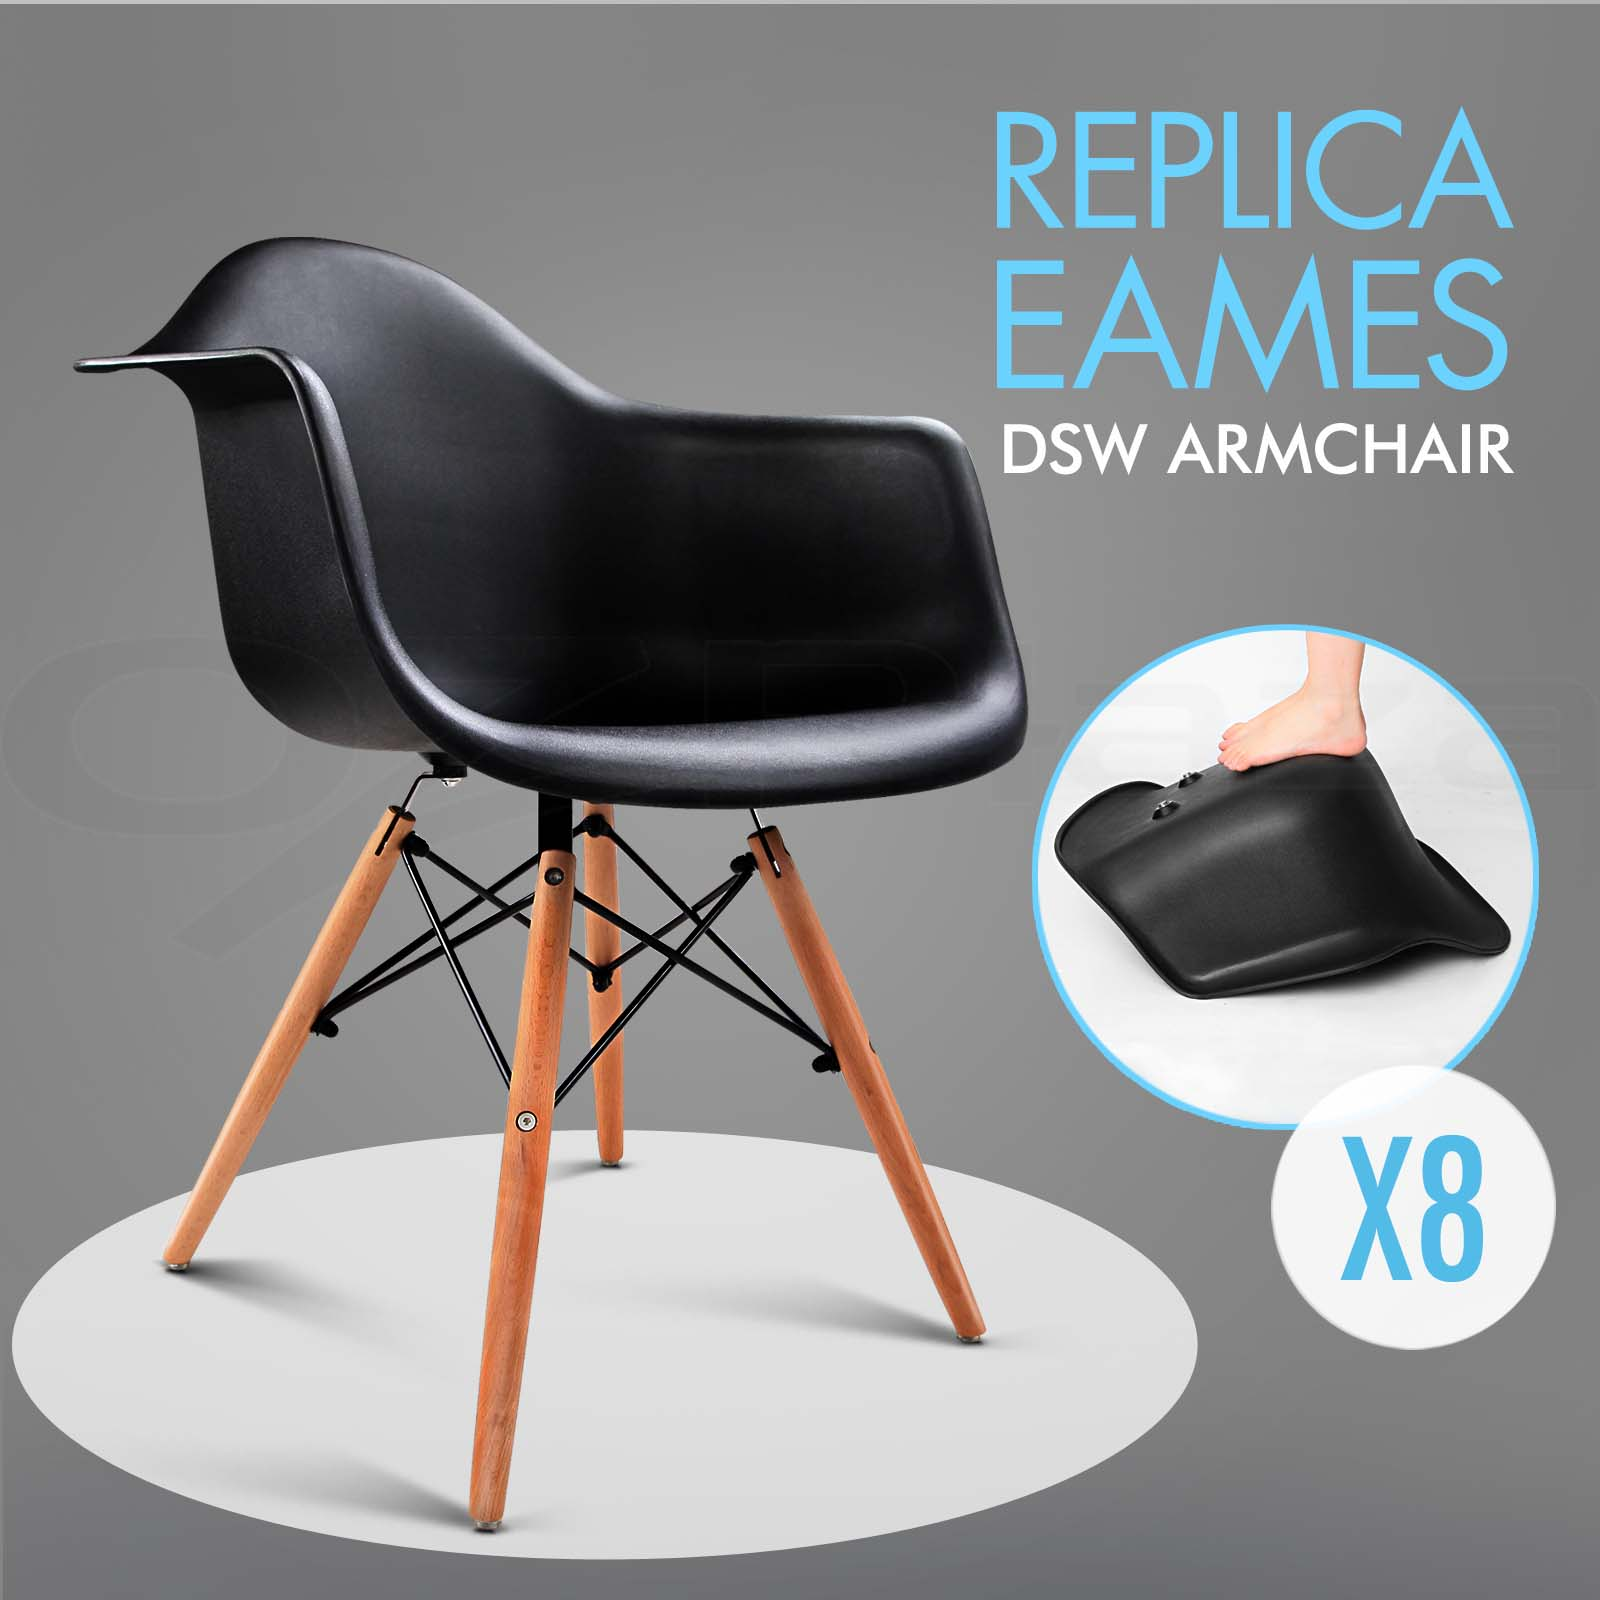 8 x retro replica eames dsw dining chair daw armchair padded fabric abs ebay. Black Bedroom Furniture Sets. Home Design Ideas